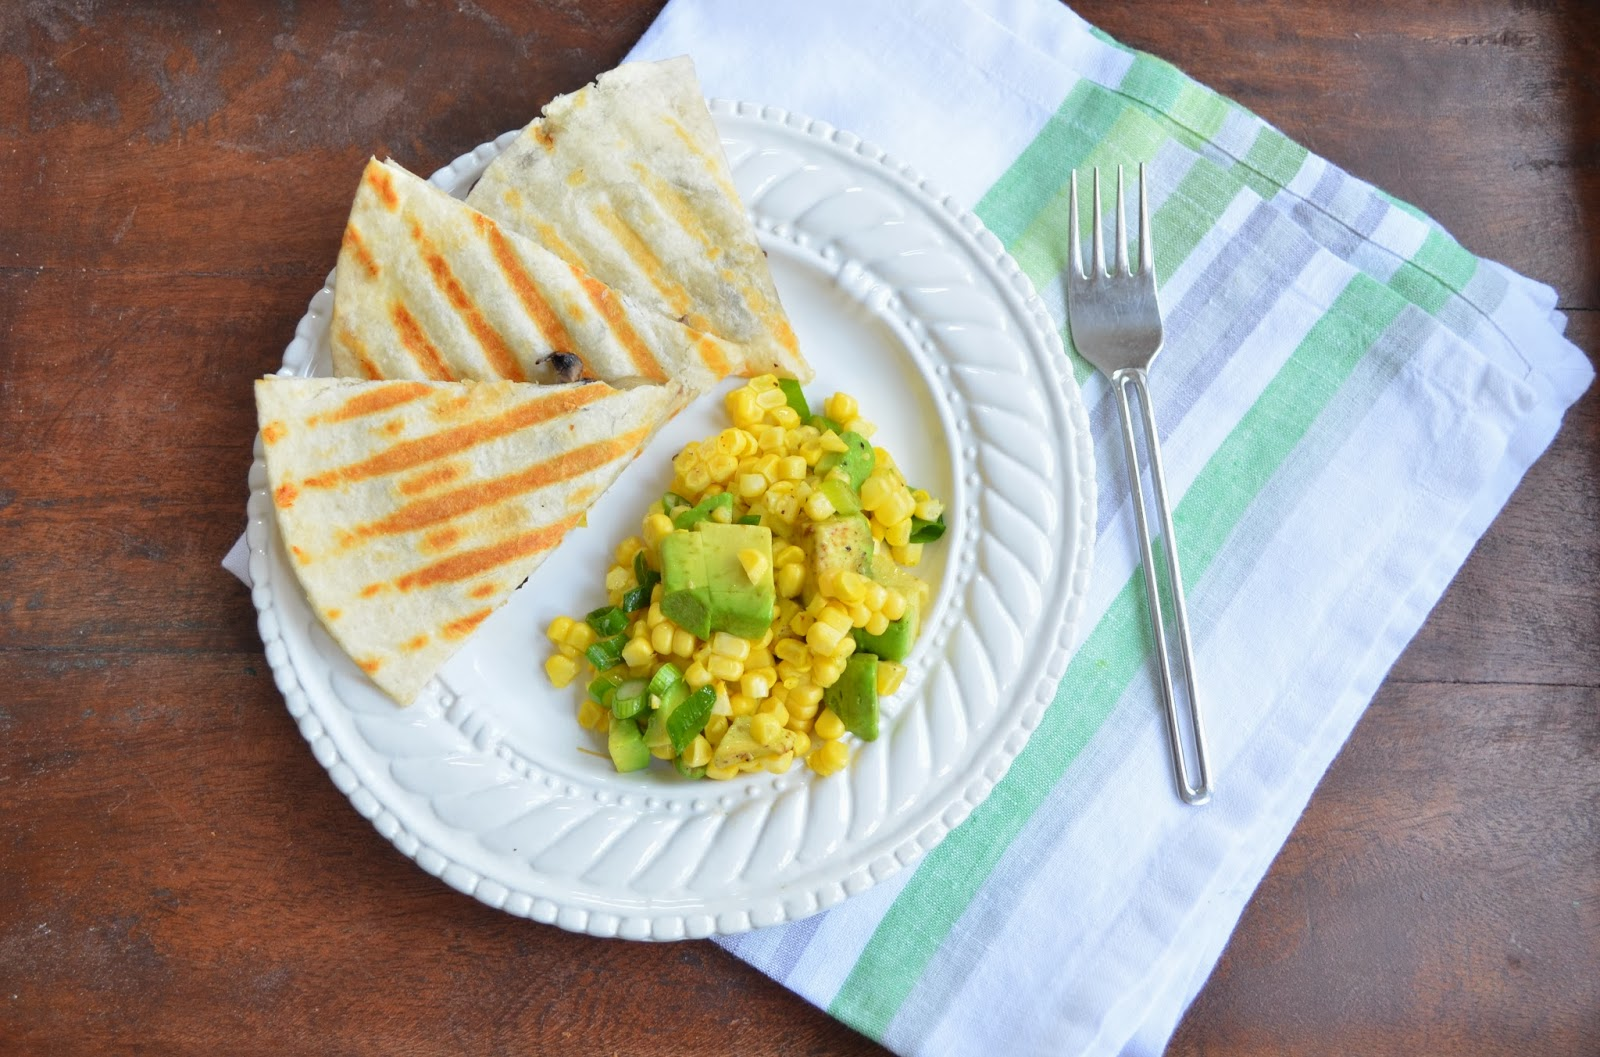 Grilled Portobello Quesadillas with Corn and Avocado Salad - Smell of Rosemary.